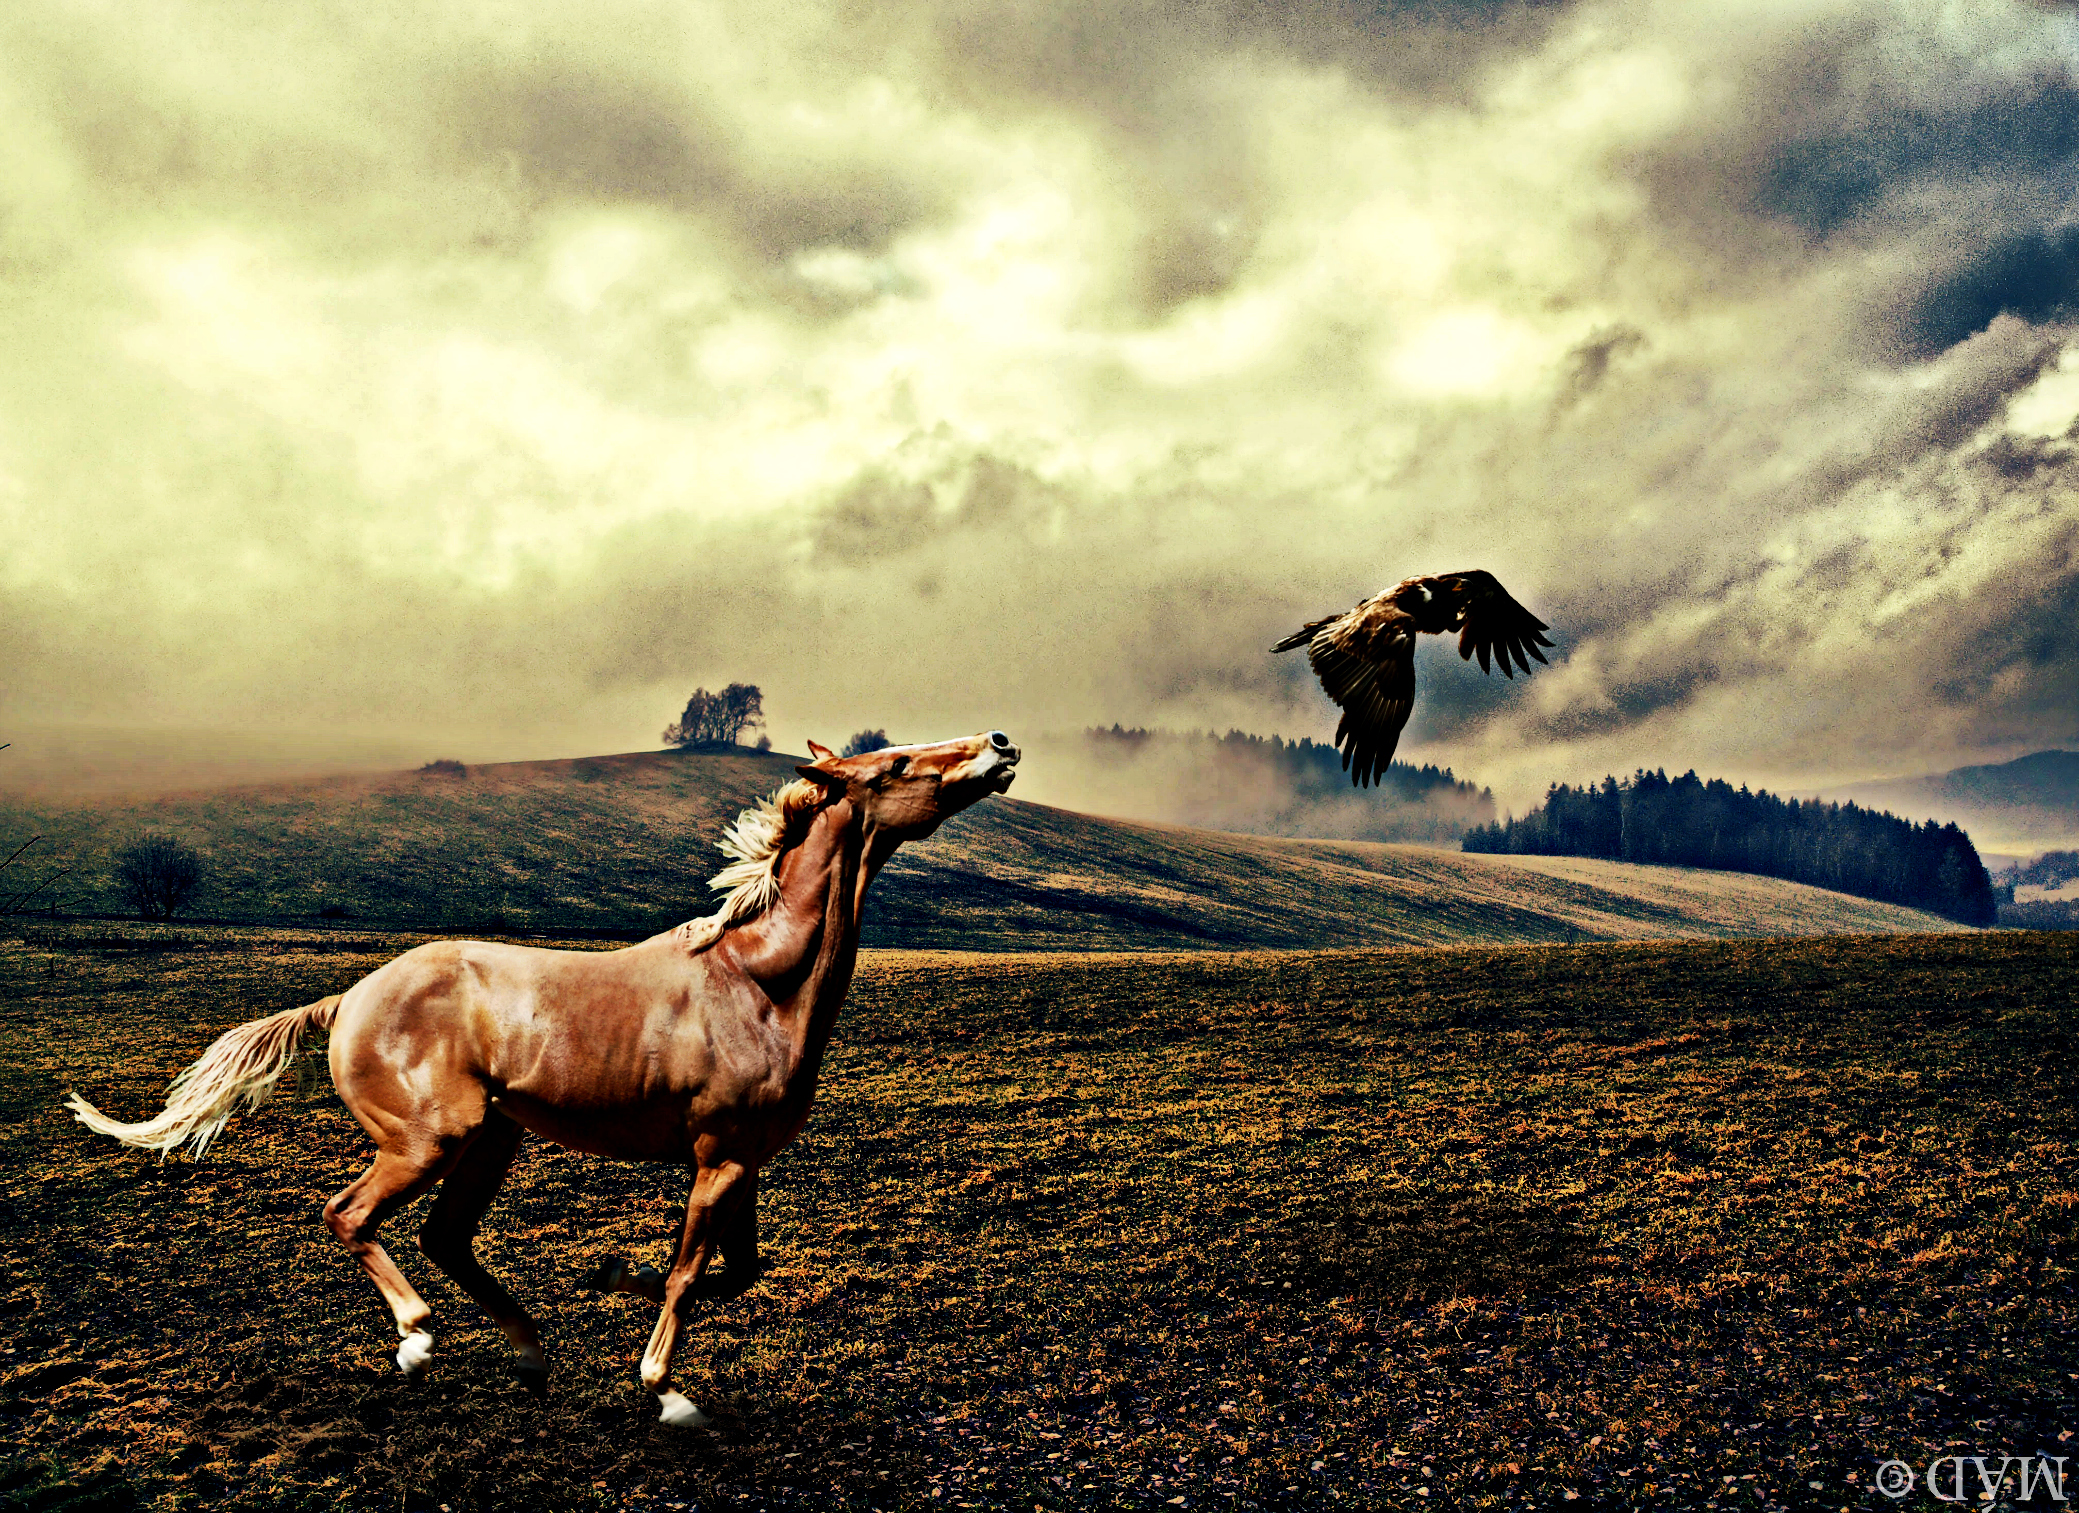 Pursuit. by Meadhag